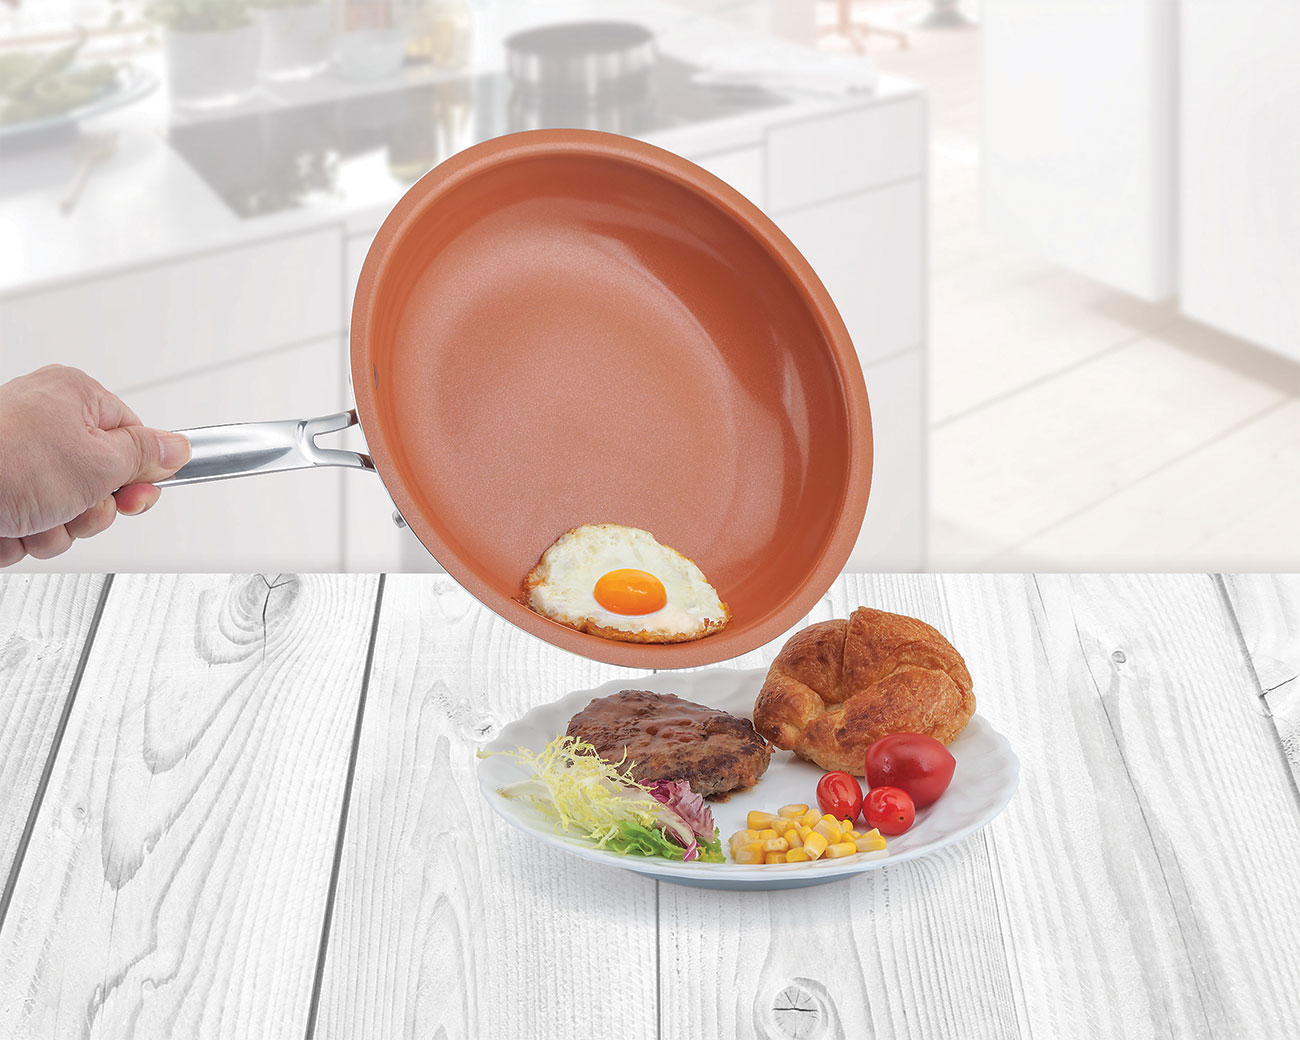 Copper Non-Stick Frying Pan - 10-inch